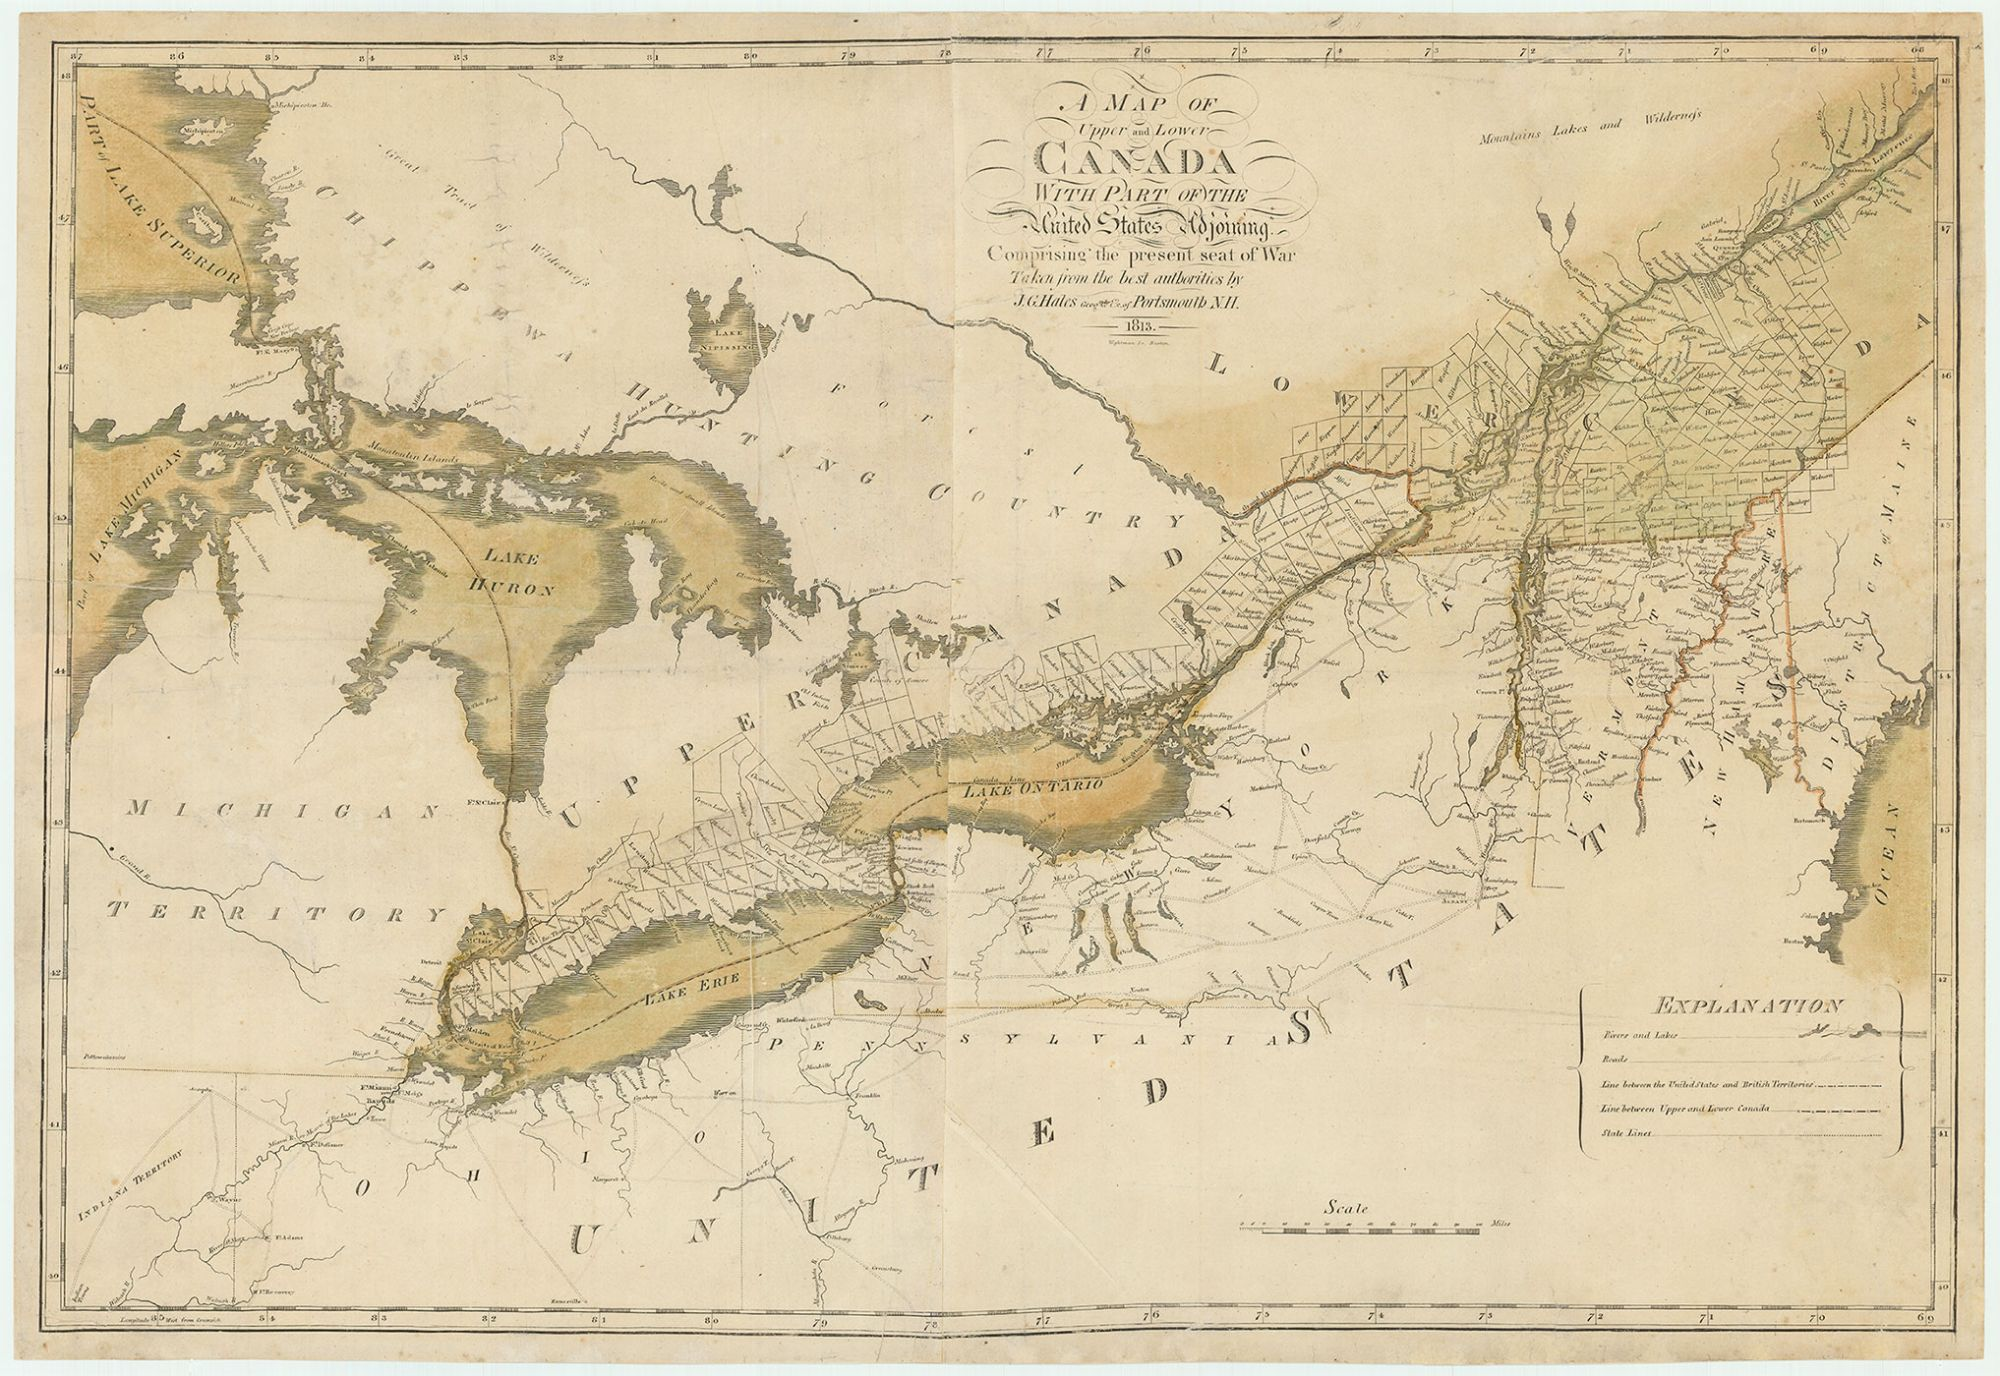 Map Of Upper United States And Lower Canada A Map of Upper and Lower Canada With Part of the United States